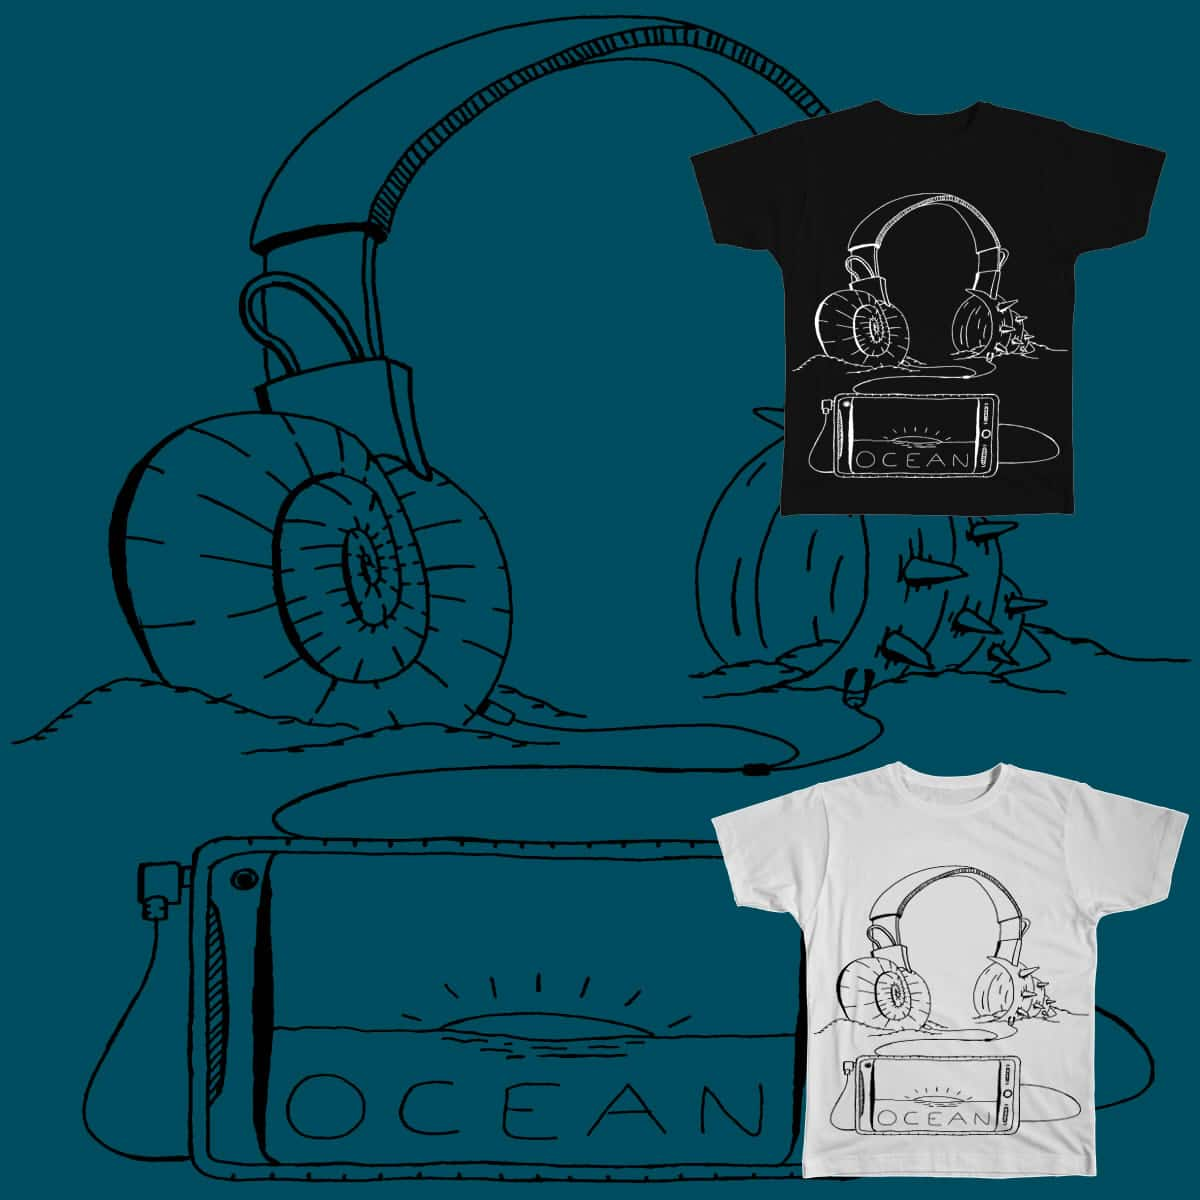 Listen to the Ocean by Dr_Donoh-onovan on Threadless